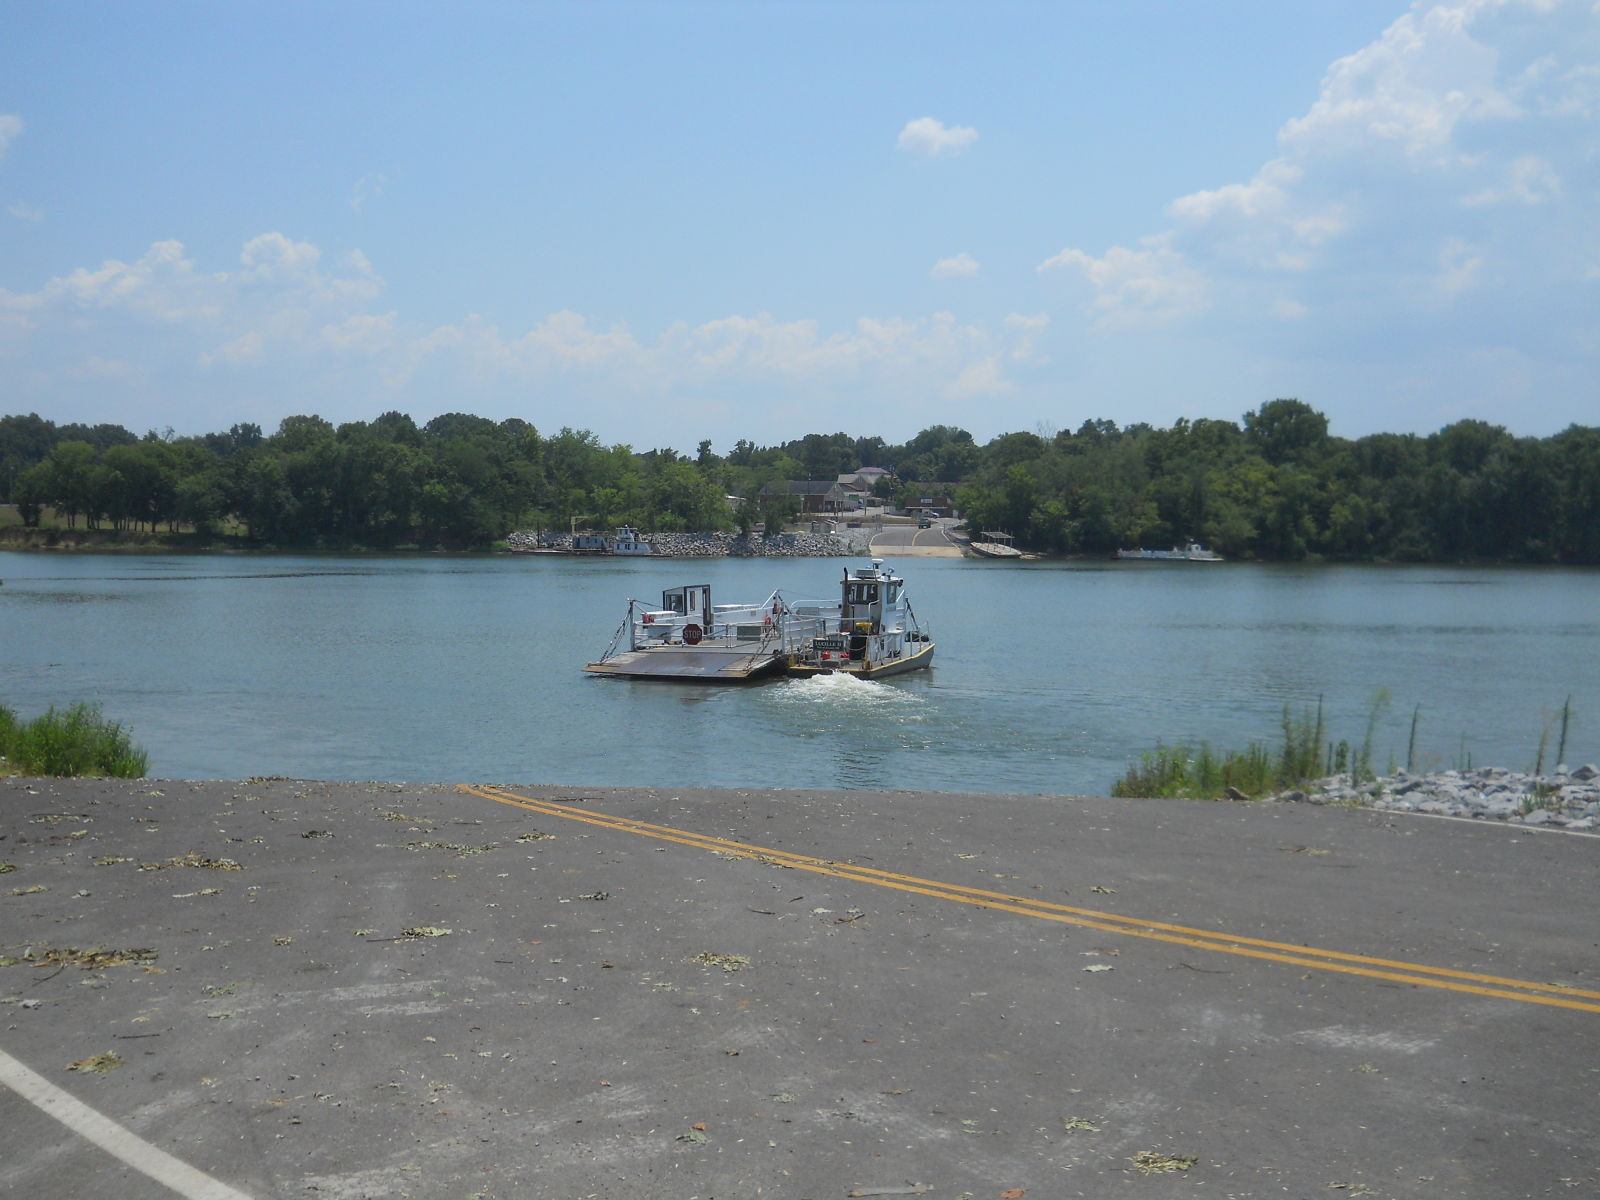 cumberland city men Quickfacts cumberland city, maryland quickfacts provides statistics for all states and counties, and for cities and towns with a population of 5,000 or more.